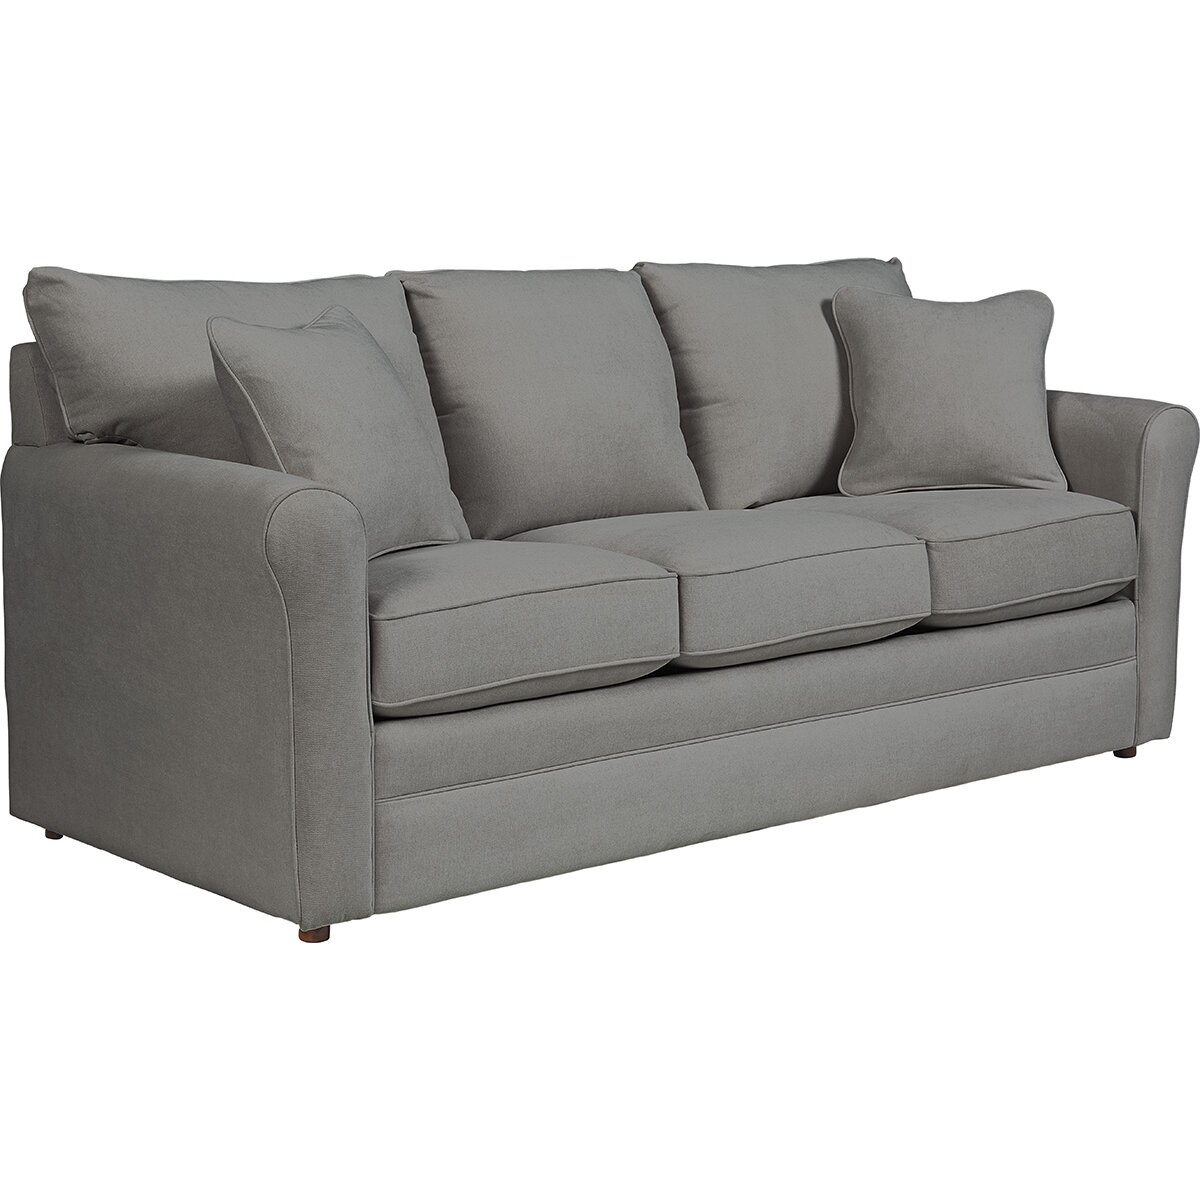 Leah Supreme Comfort™ Sleeper Sofa - La-Z-Boy Leah Supreme Comfort™ Sleeper Sofa Wayfair